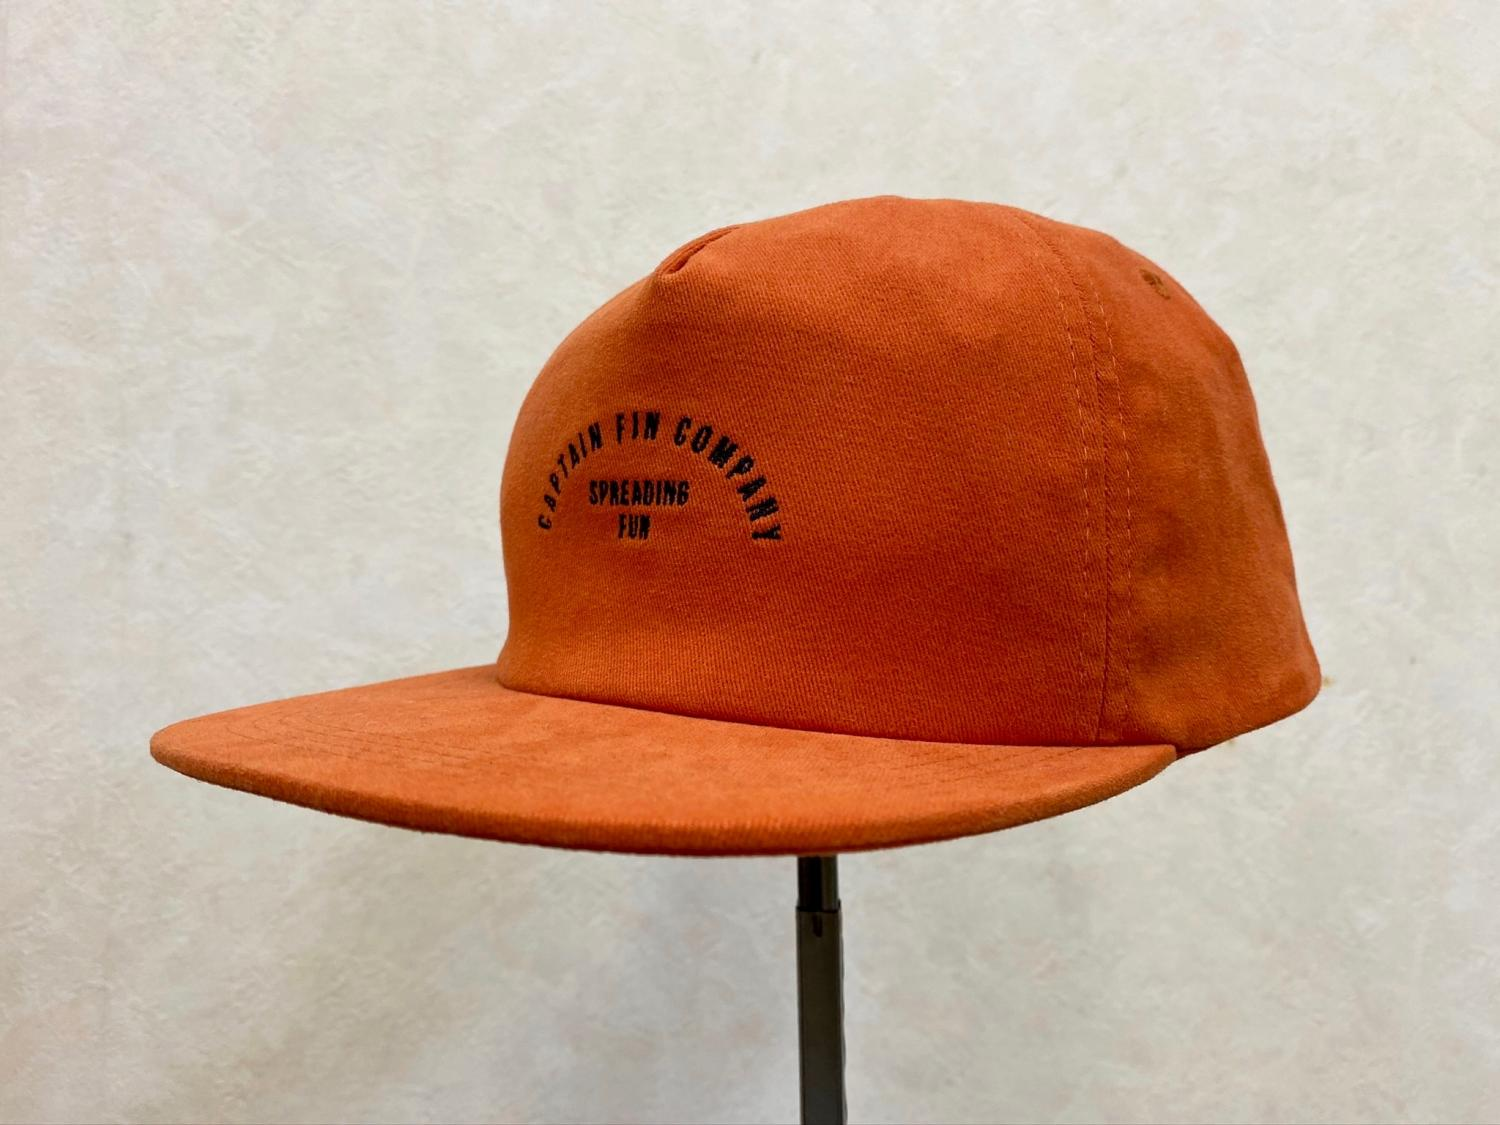 [CAPTAIN FIN Co.] FUN ARCH CAP